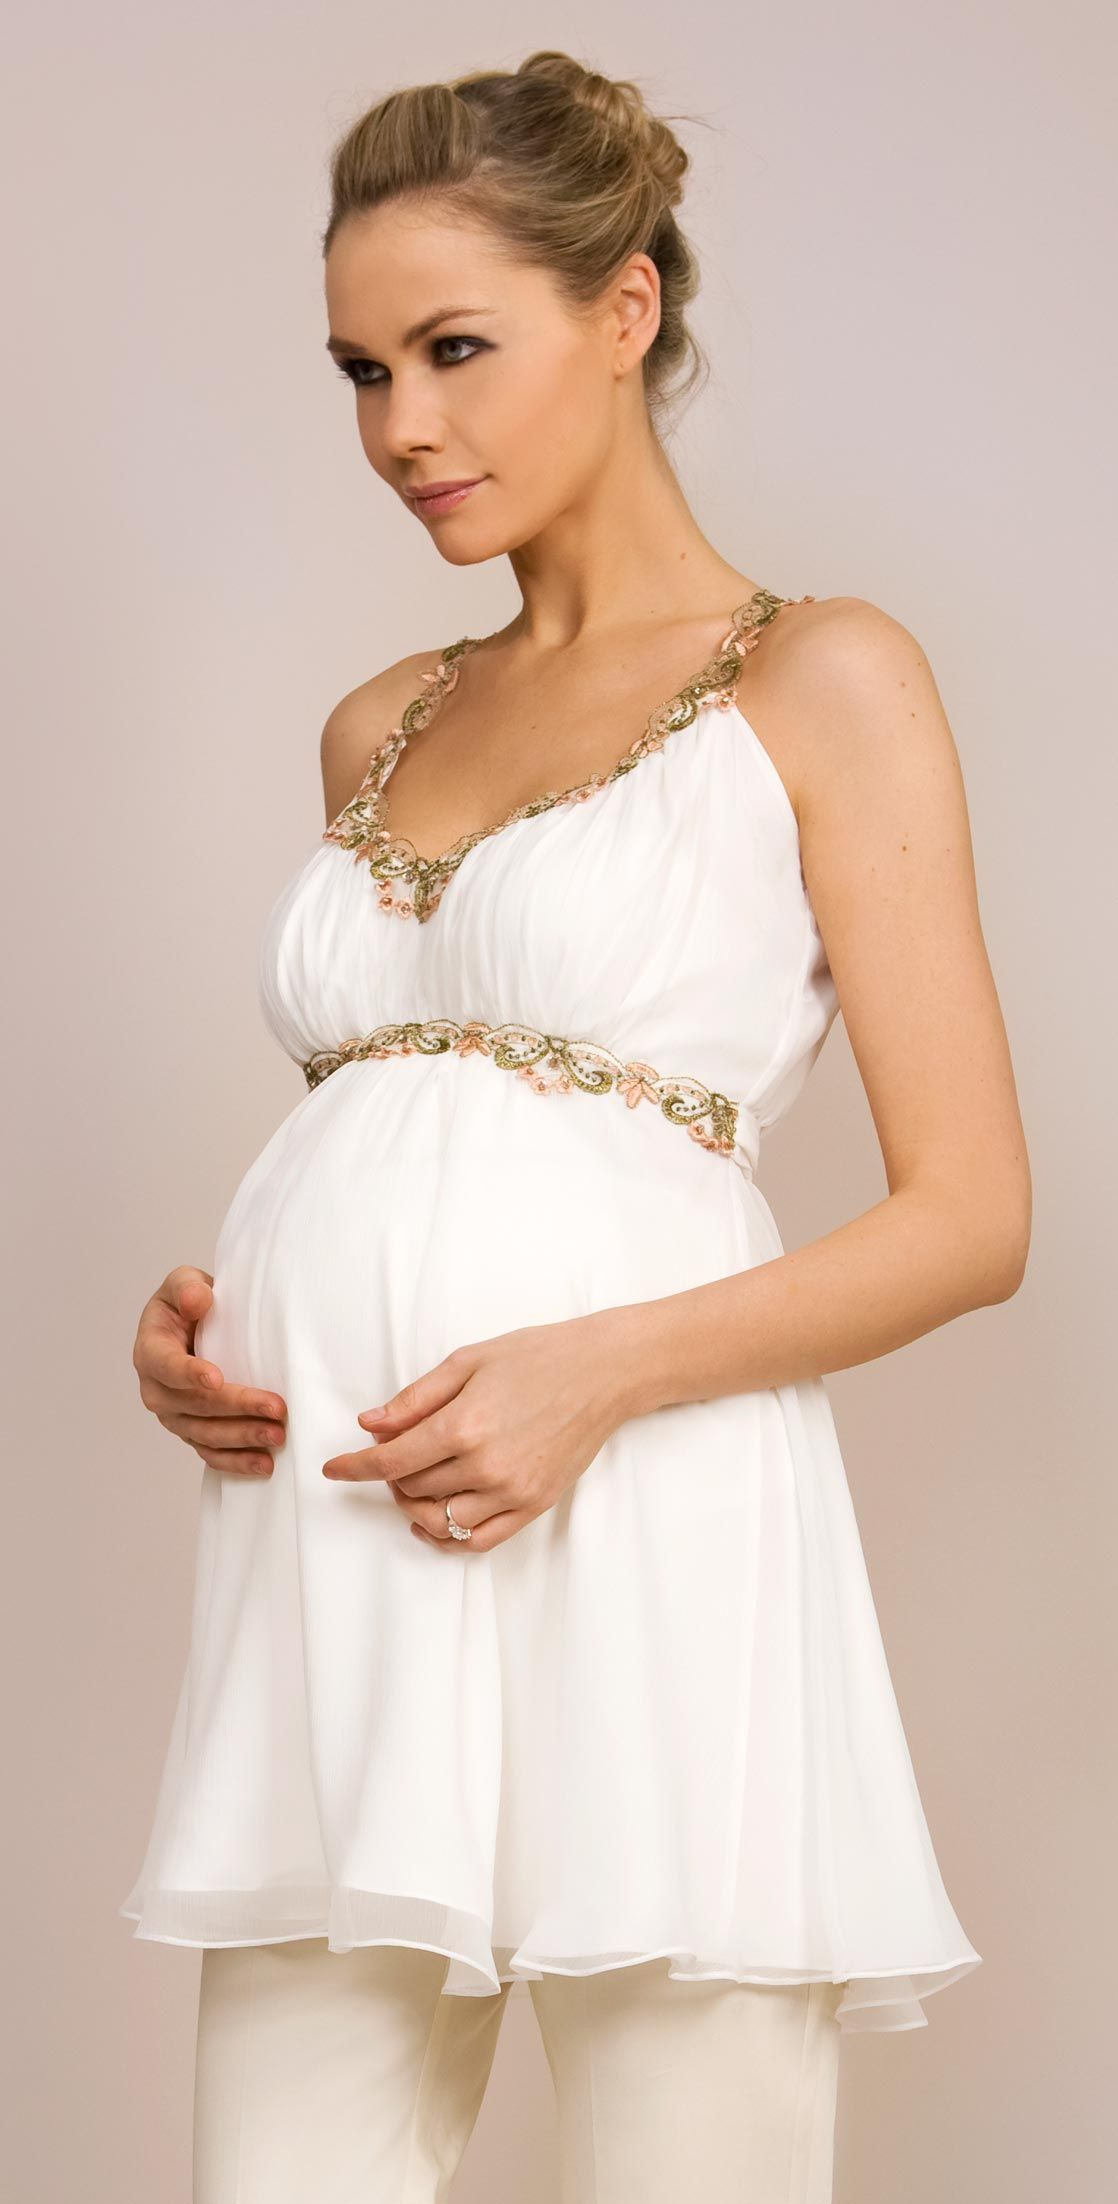 Grecian top tiffany rose tiffany and rose grecian maternity top by tiffany rose ombrellifo Gallery